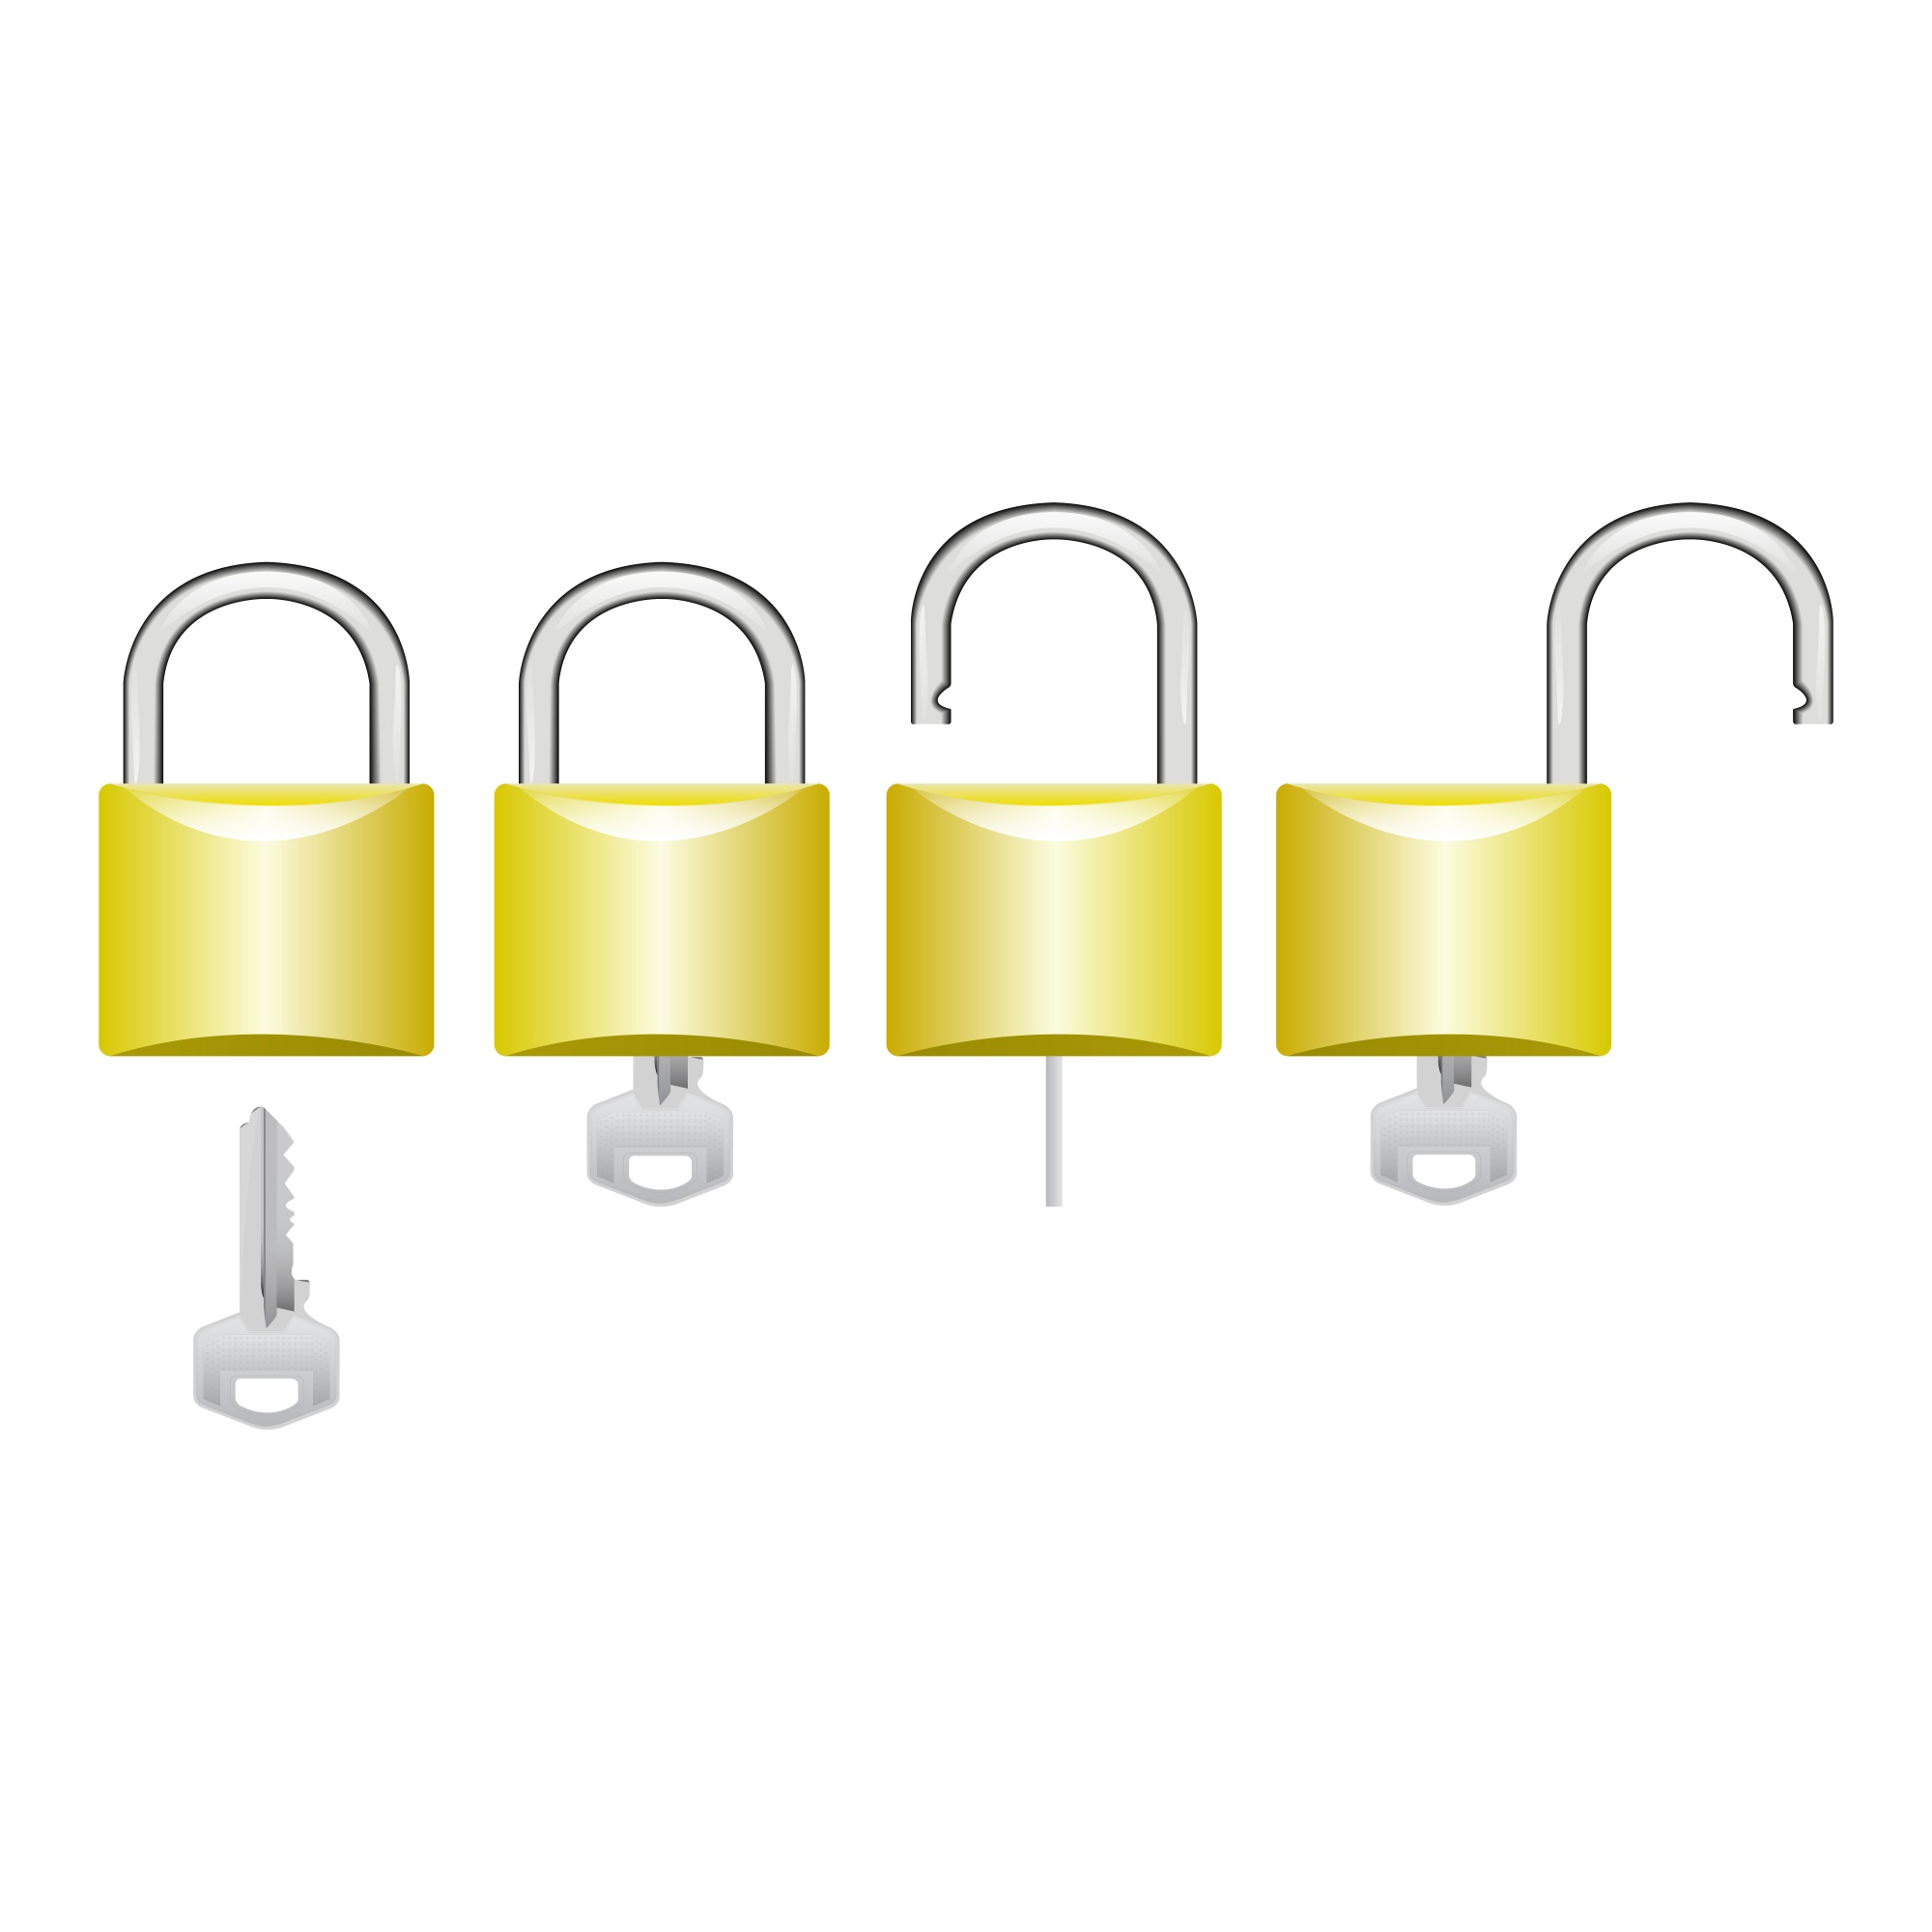 Process to open a lock